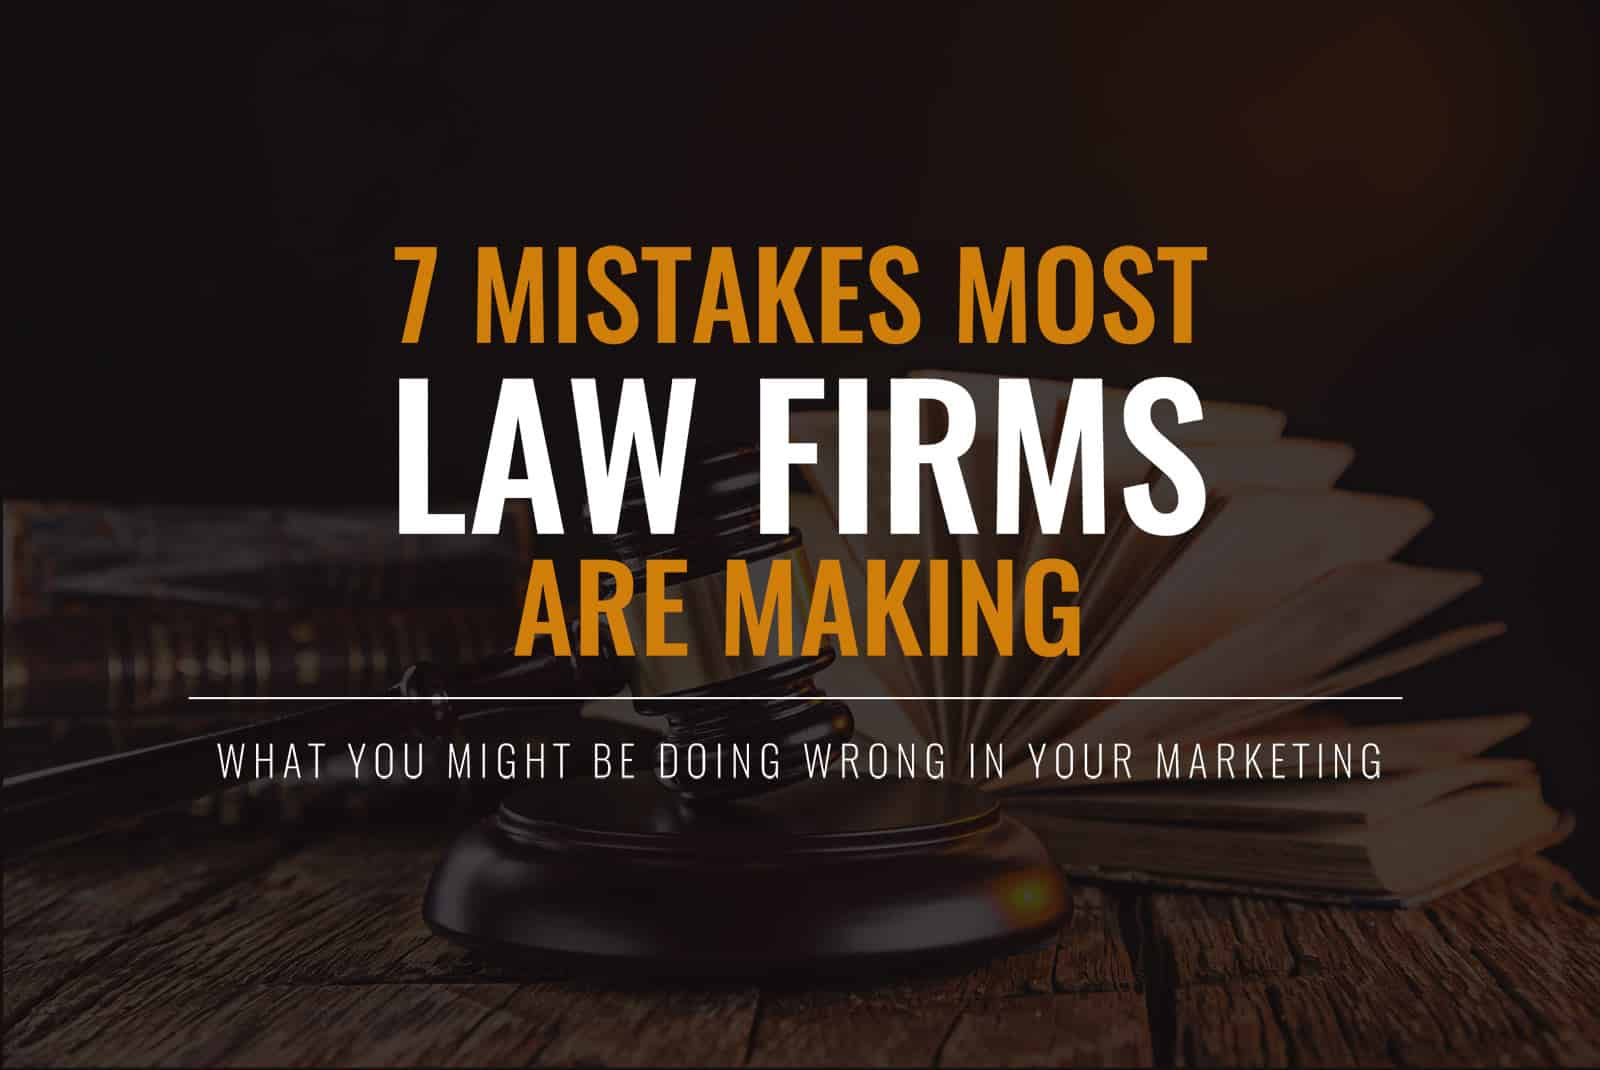 7 Marketing Mistakes Most Law Firms Are Making